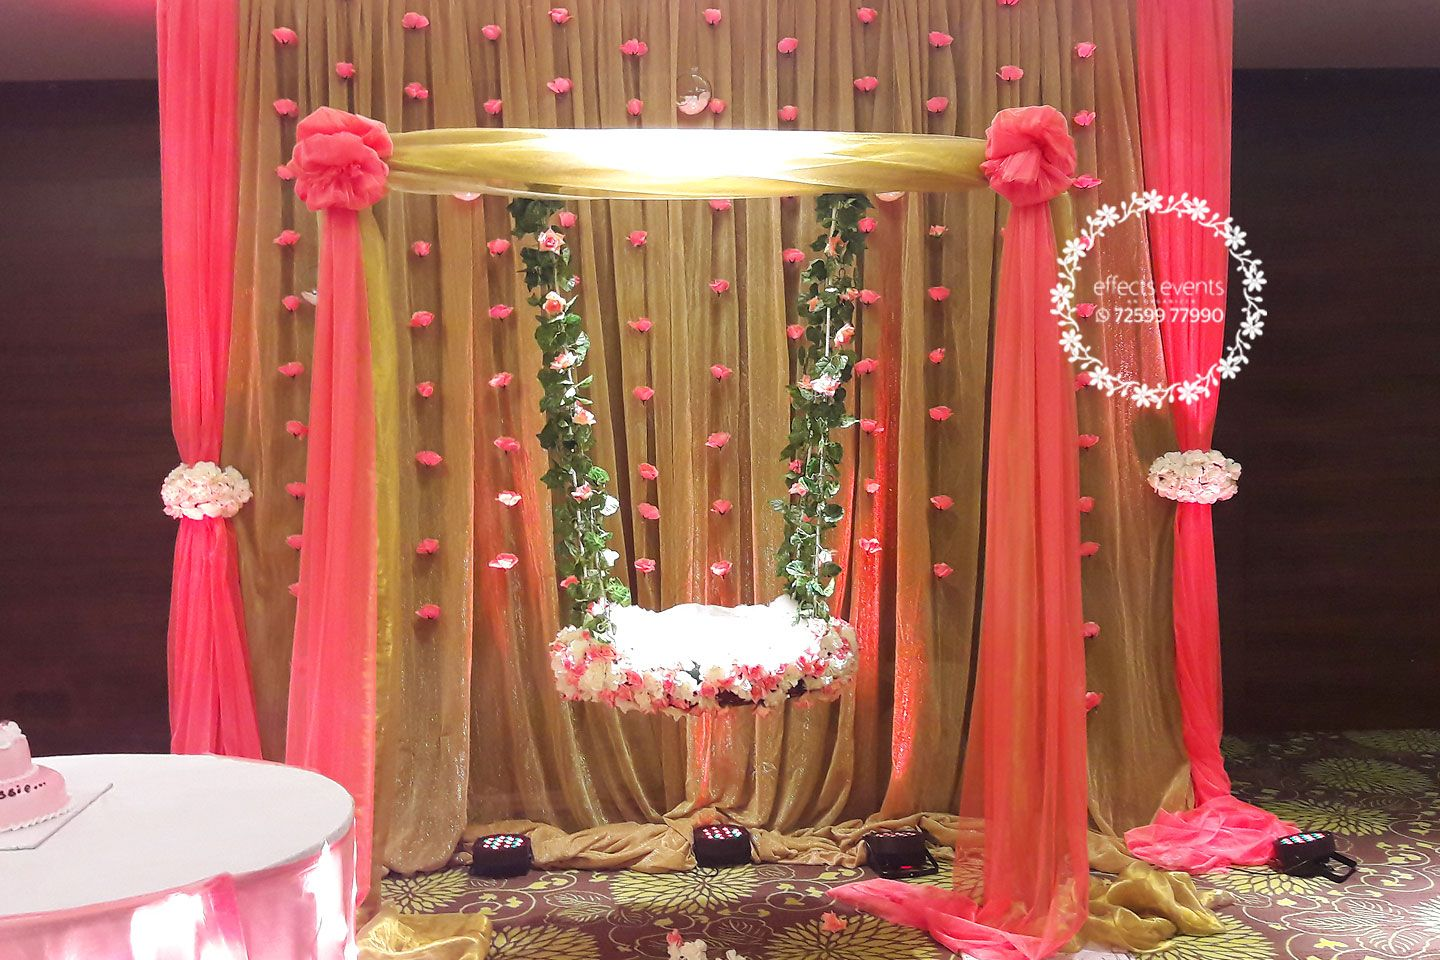 Naming Ceremony Events Organizer Decoration Cradle Ceremony